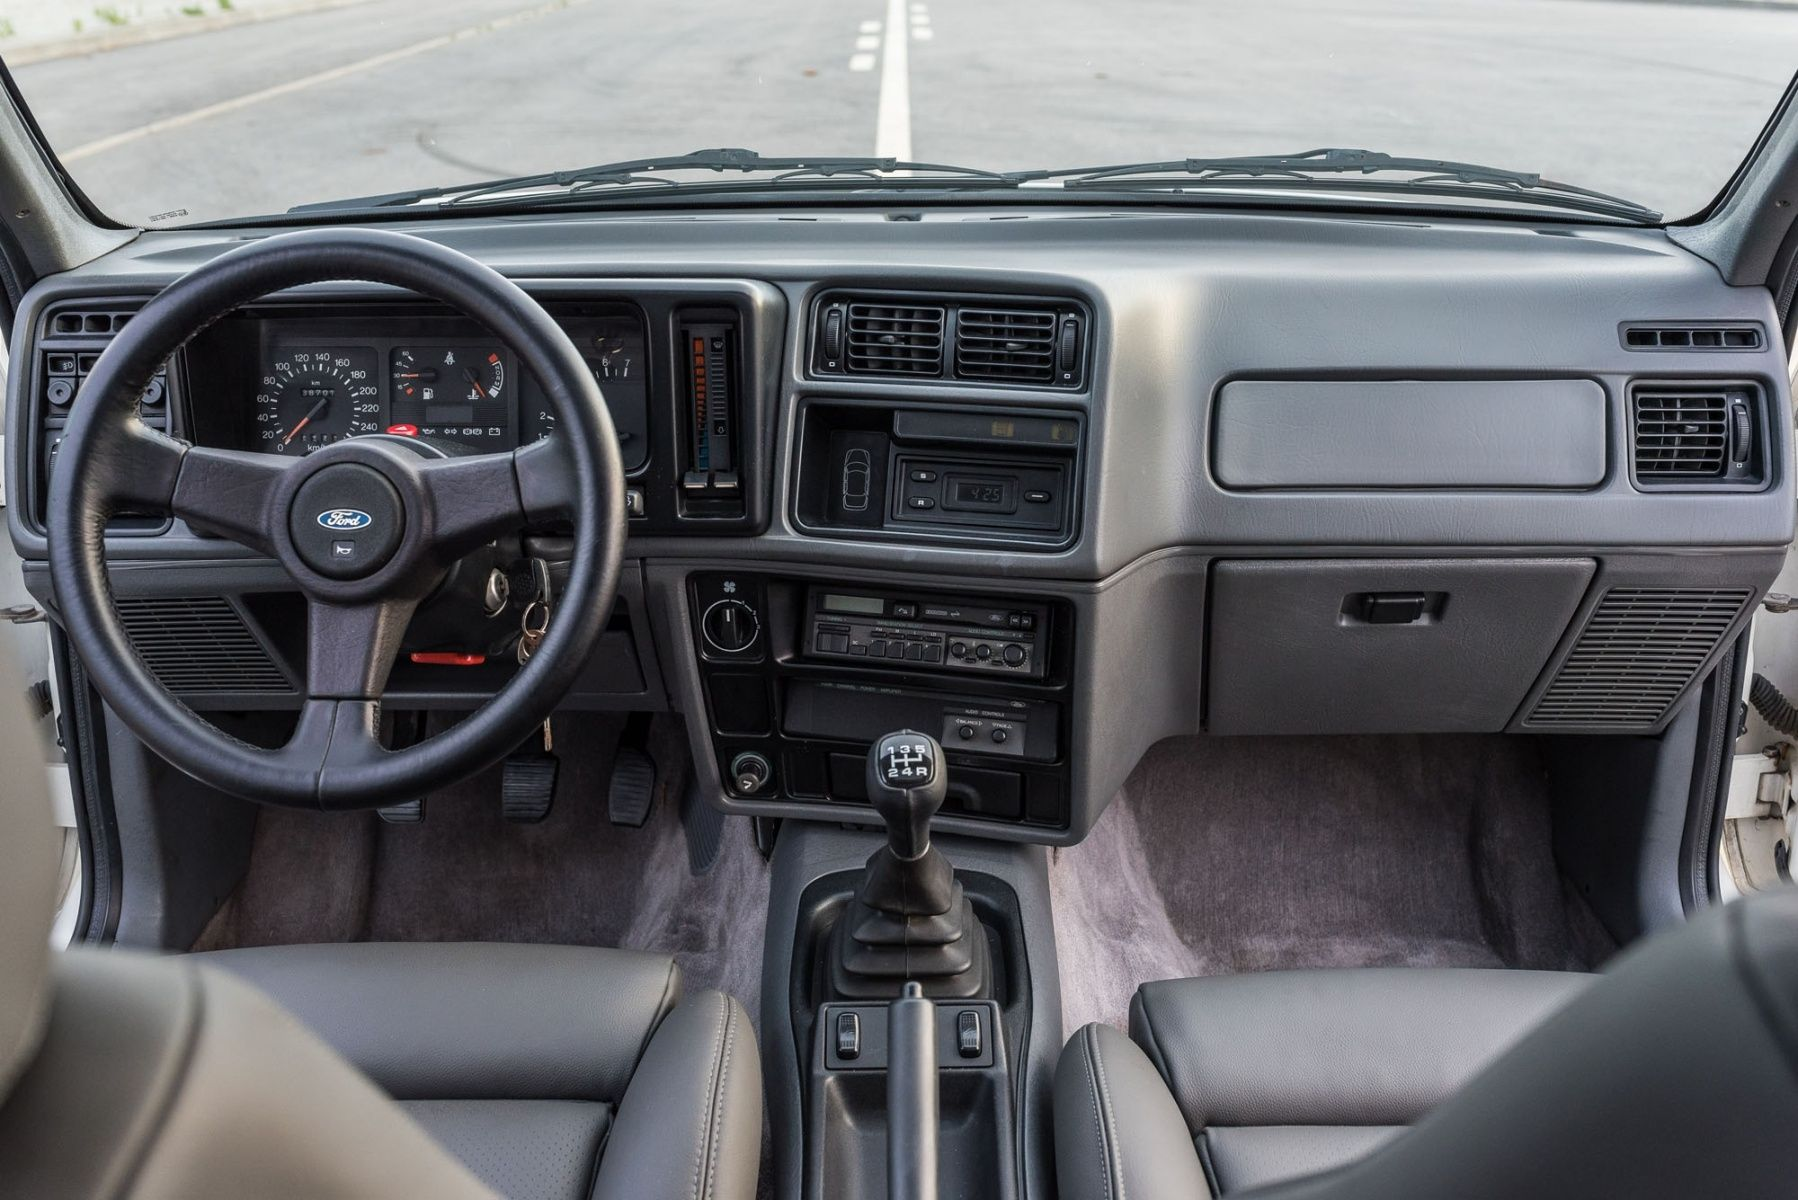 1988 Ford Sierra Cosworth 38 000kms Classic Driver Market